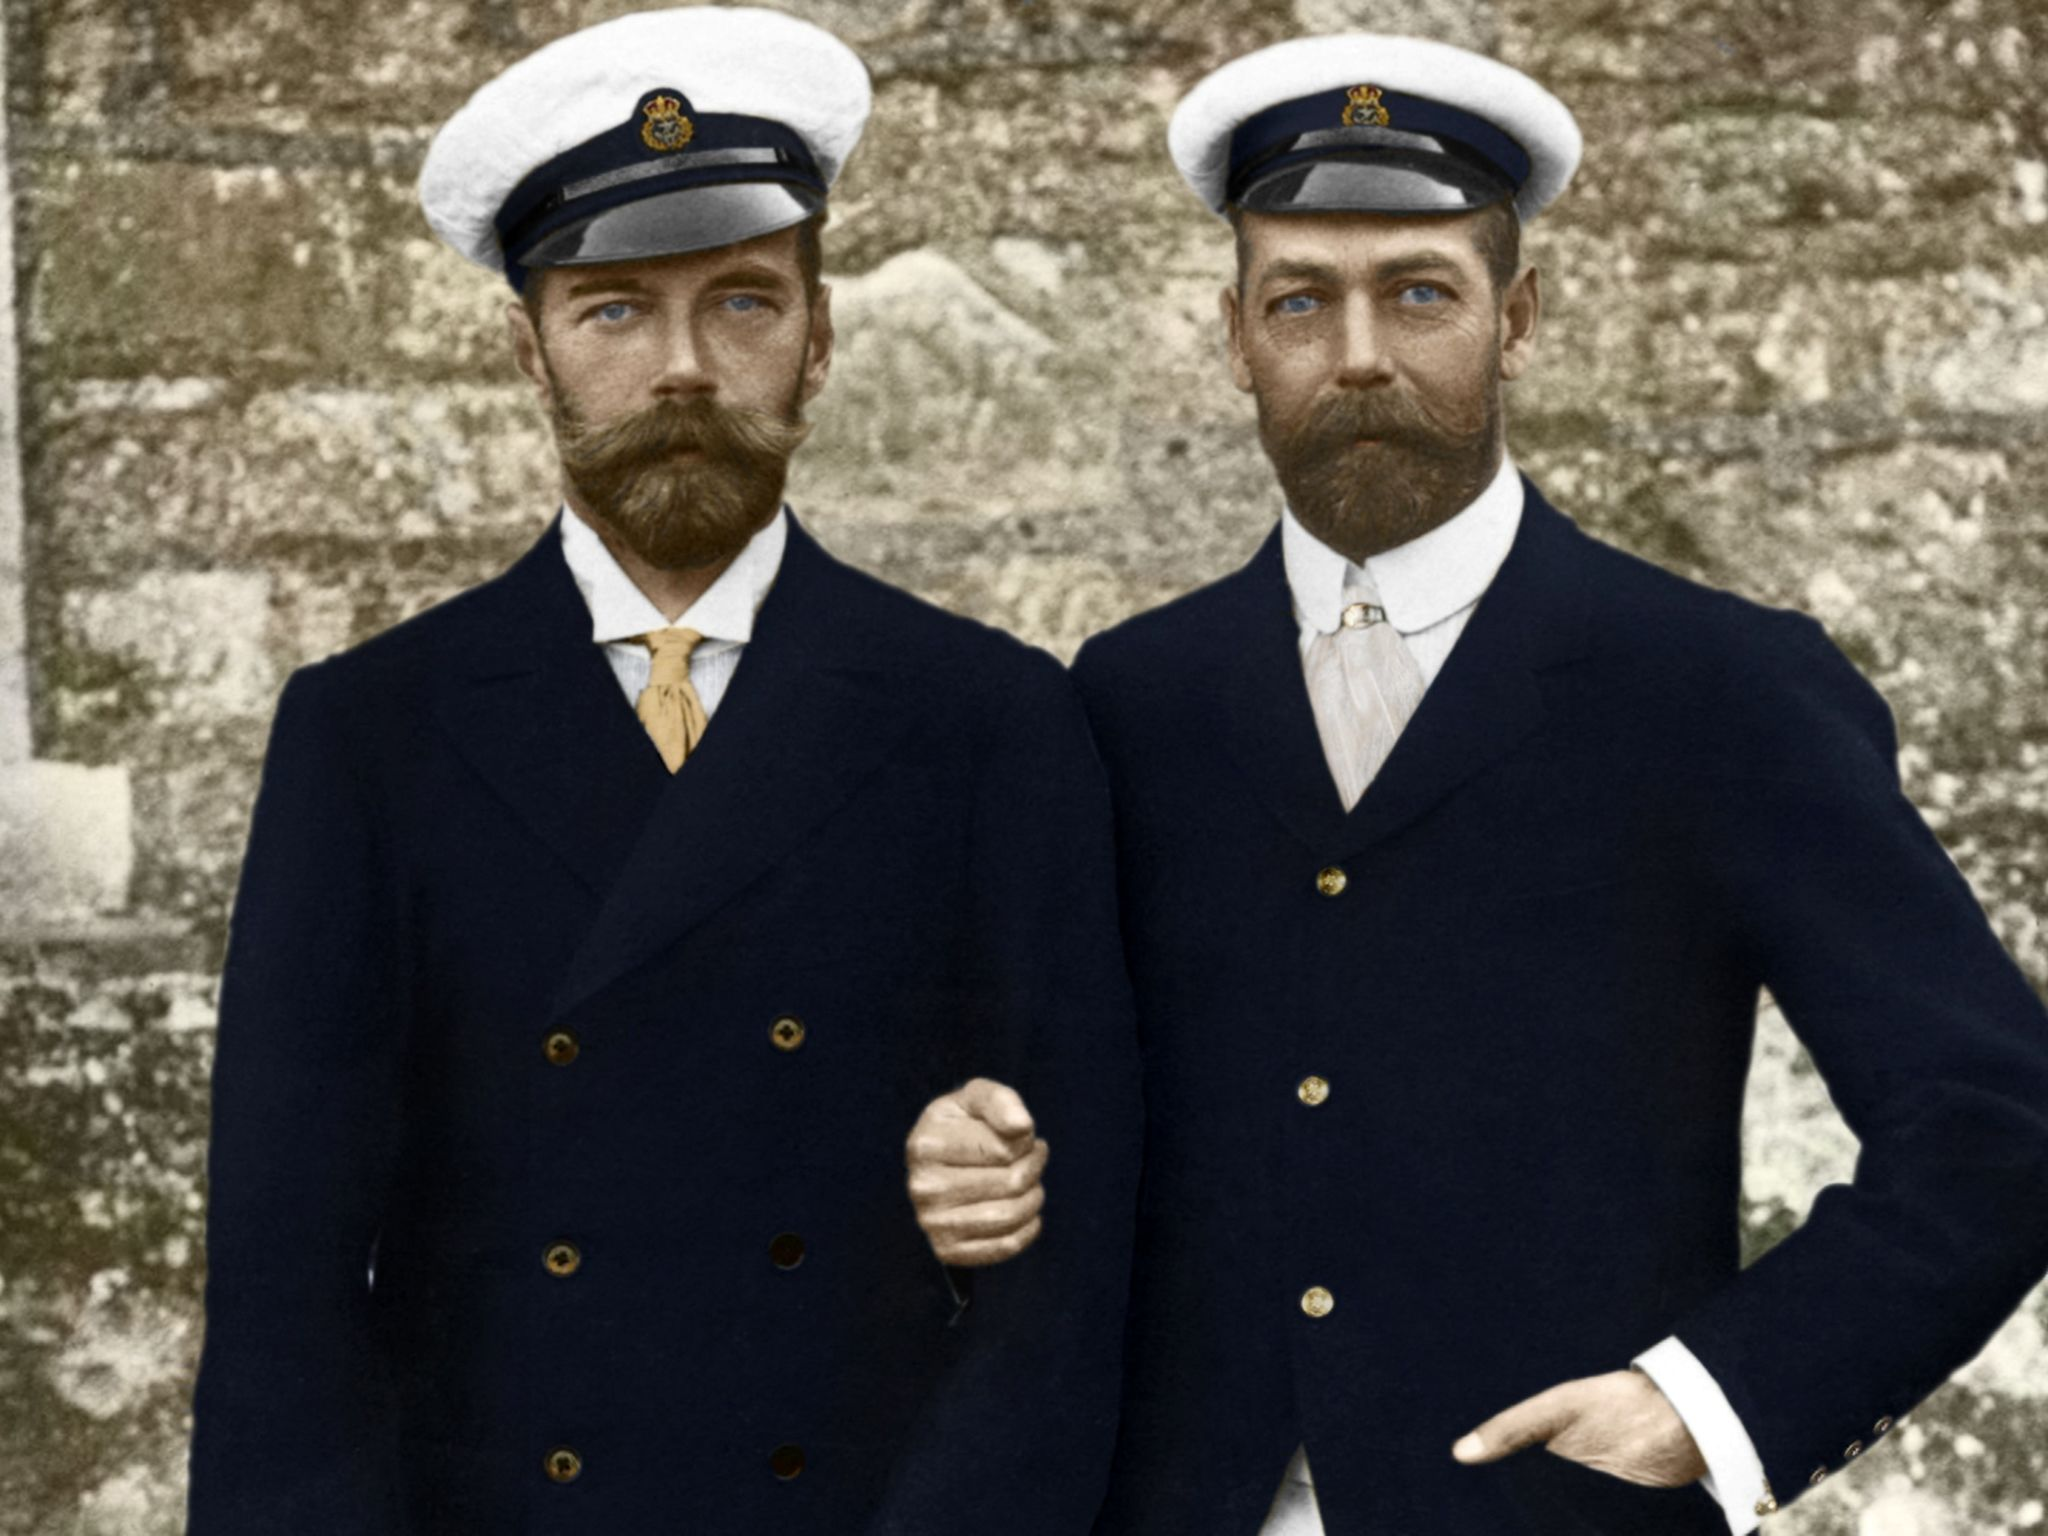 There's a remarkable resemblance between Tsar Nicolas II (left) and the British monarch George V... [Photo of the day - September 2014]